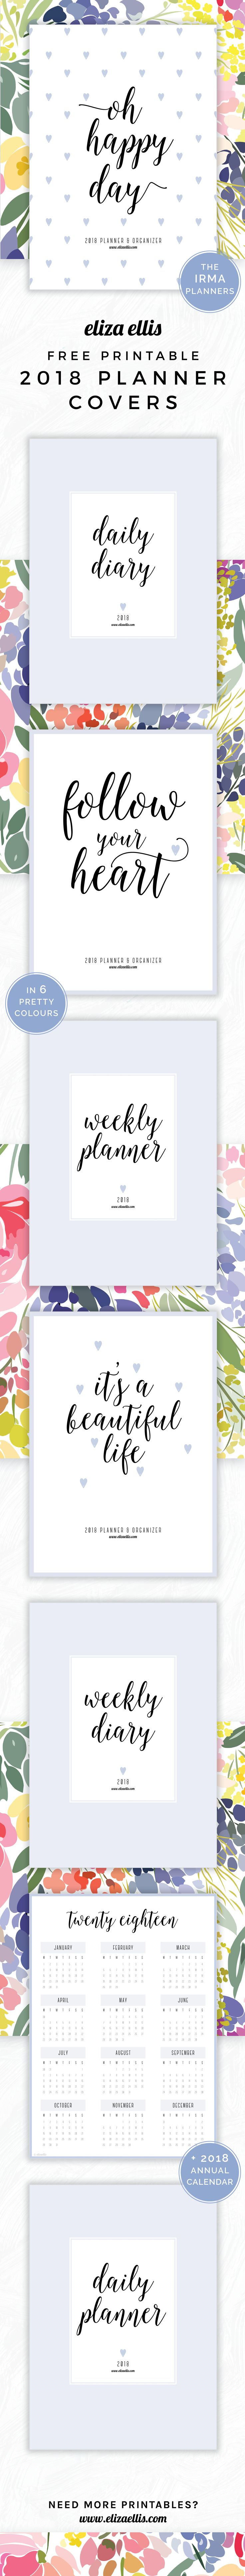 Free Printable 2018 Irma Planner Covers and Annual Calendars in Dusk // Eliza Ellis. Awesome 2018 planner covers and annual calendars that are absolutely free - print to A4 or A5 and available in 6 colours. Great for work planners, DIY planners and diaries for work, home, SAHMs, WAHMs, students, college, university, teachers and mums!